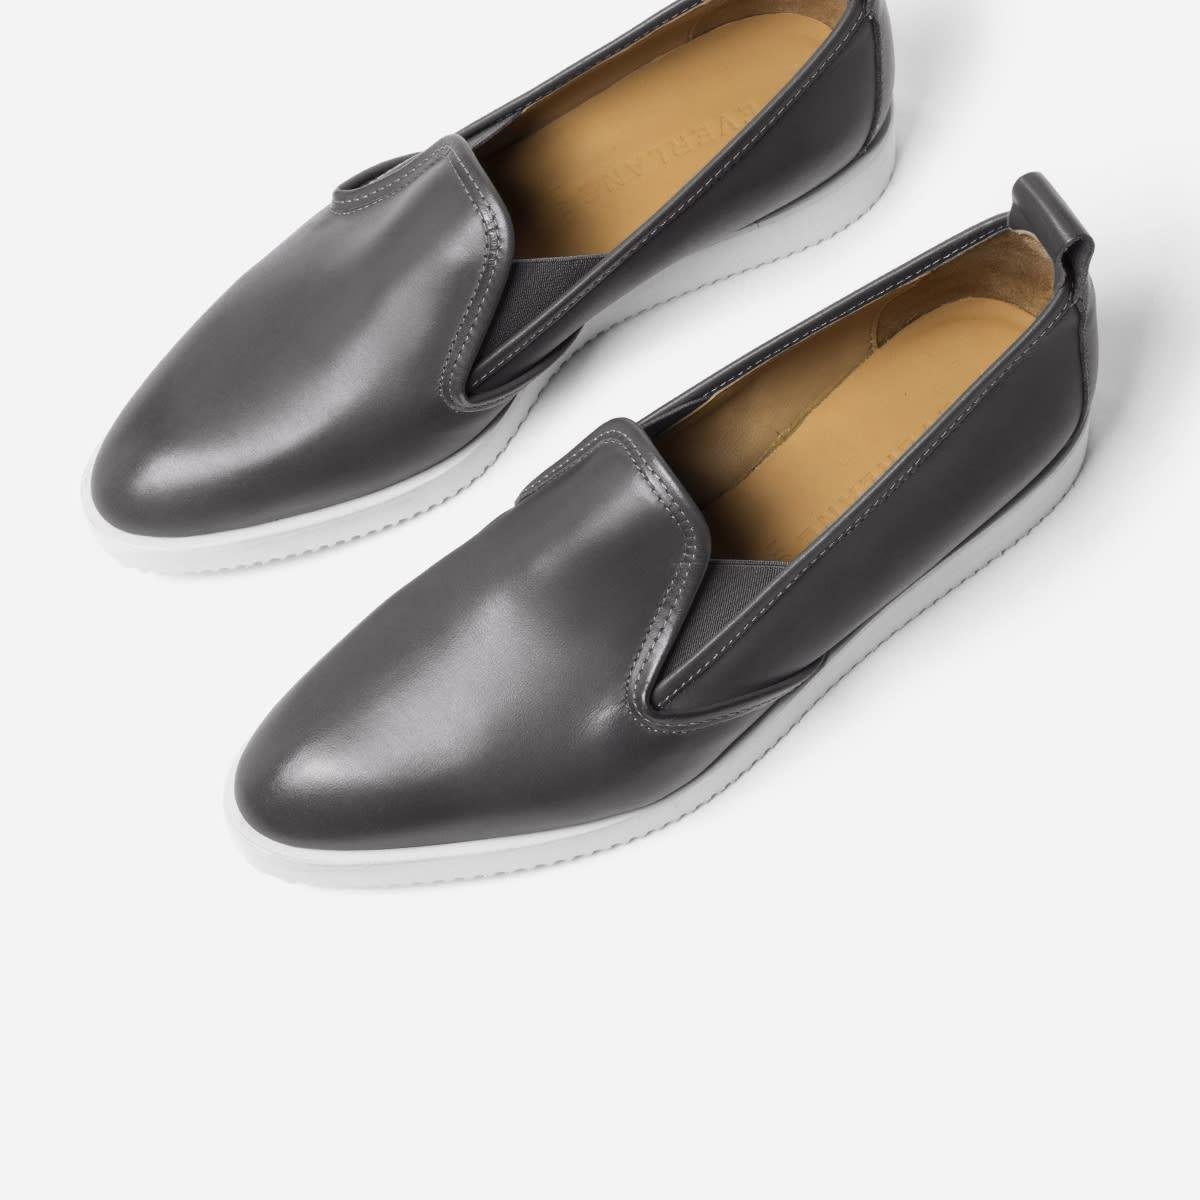 The Leather Street Shoe 1